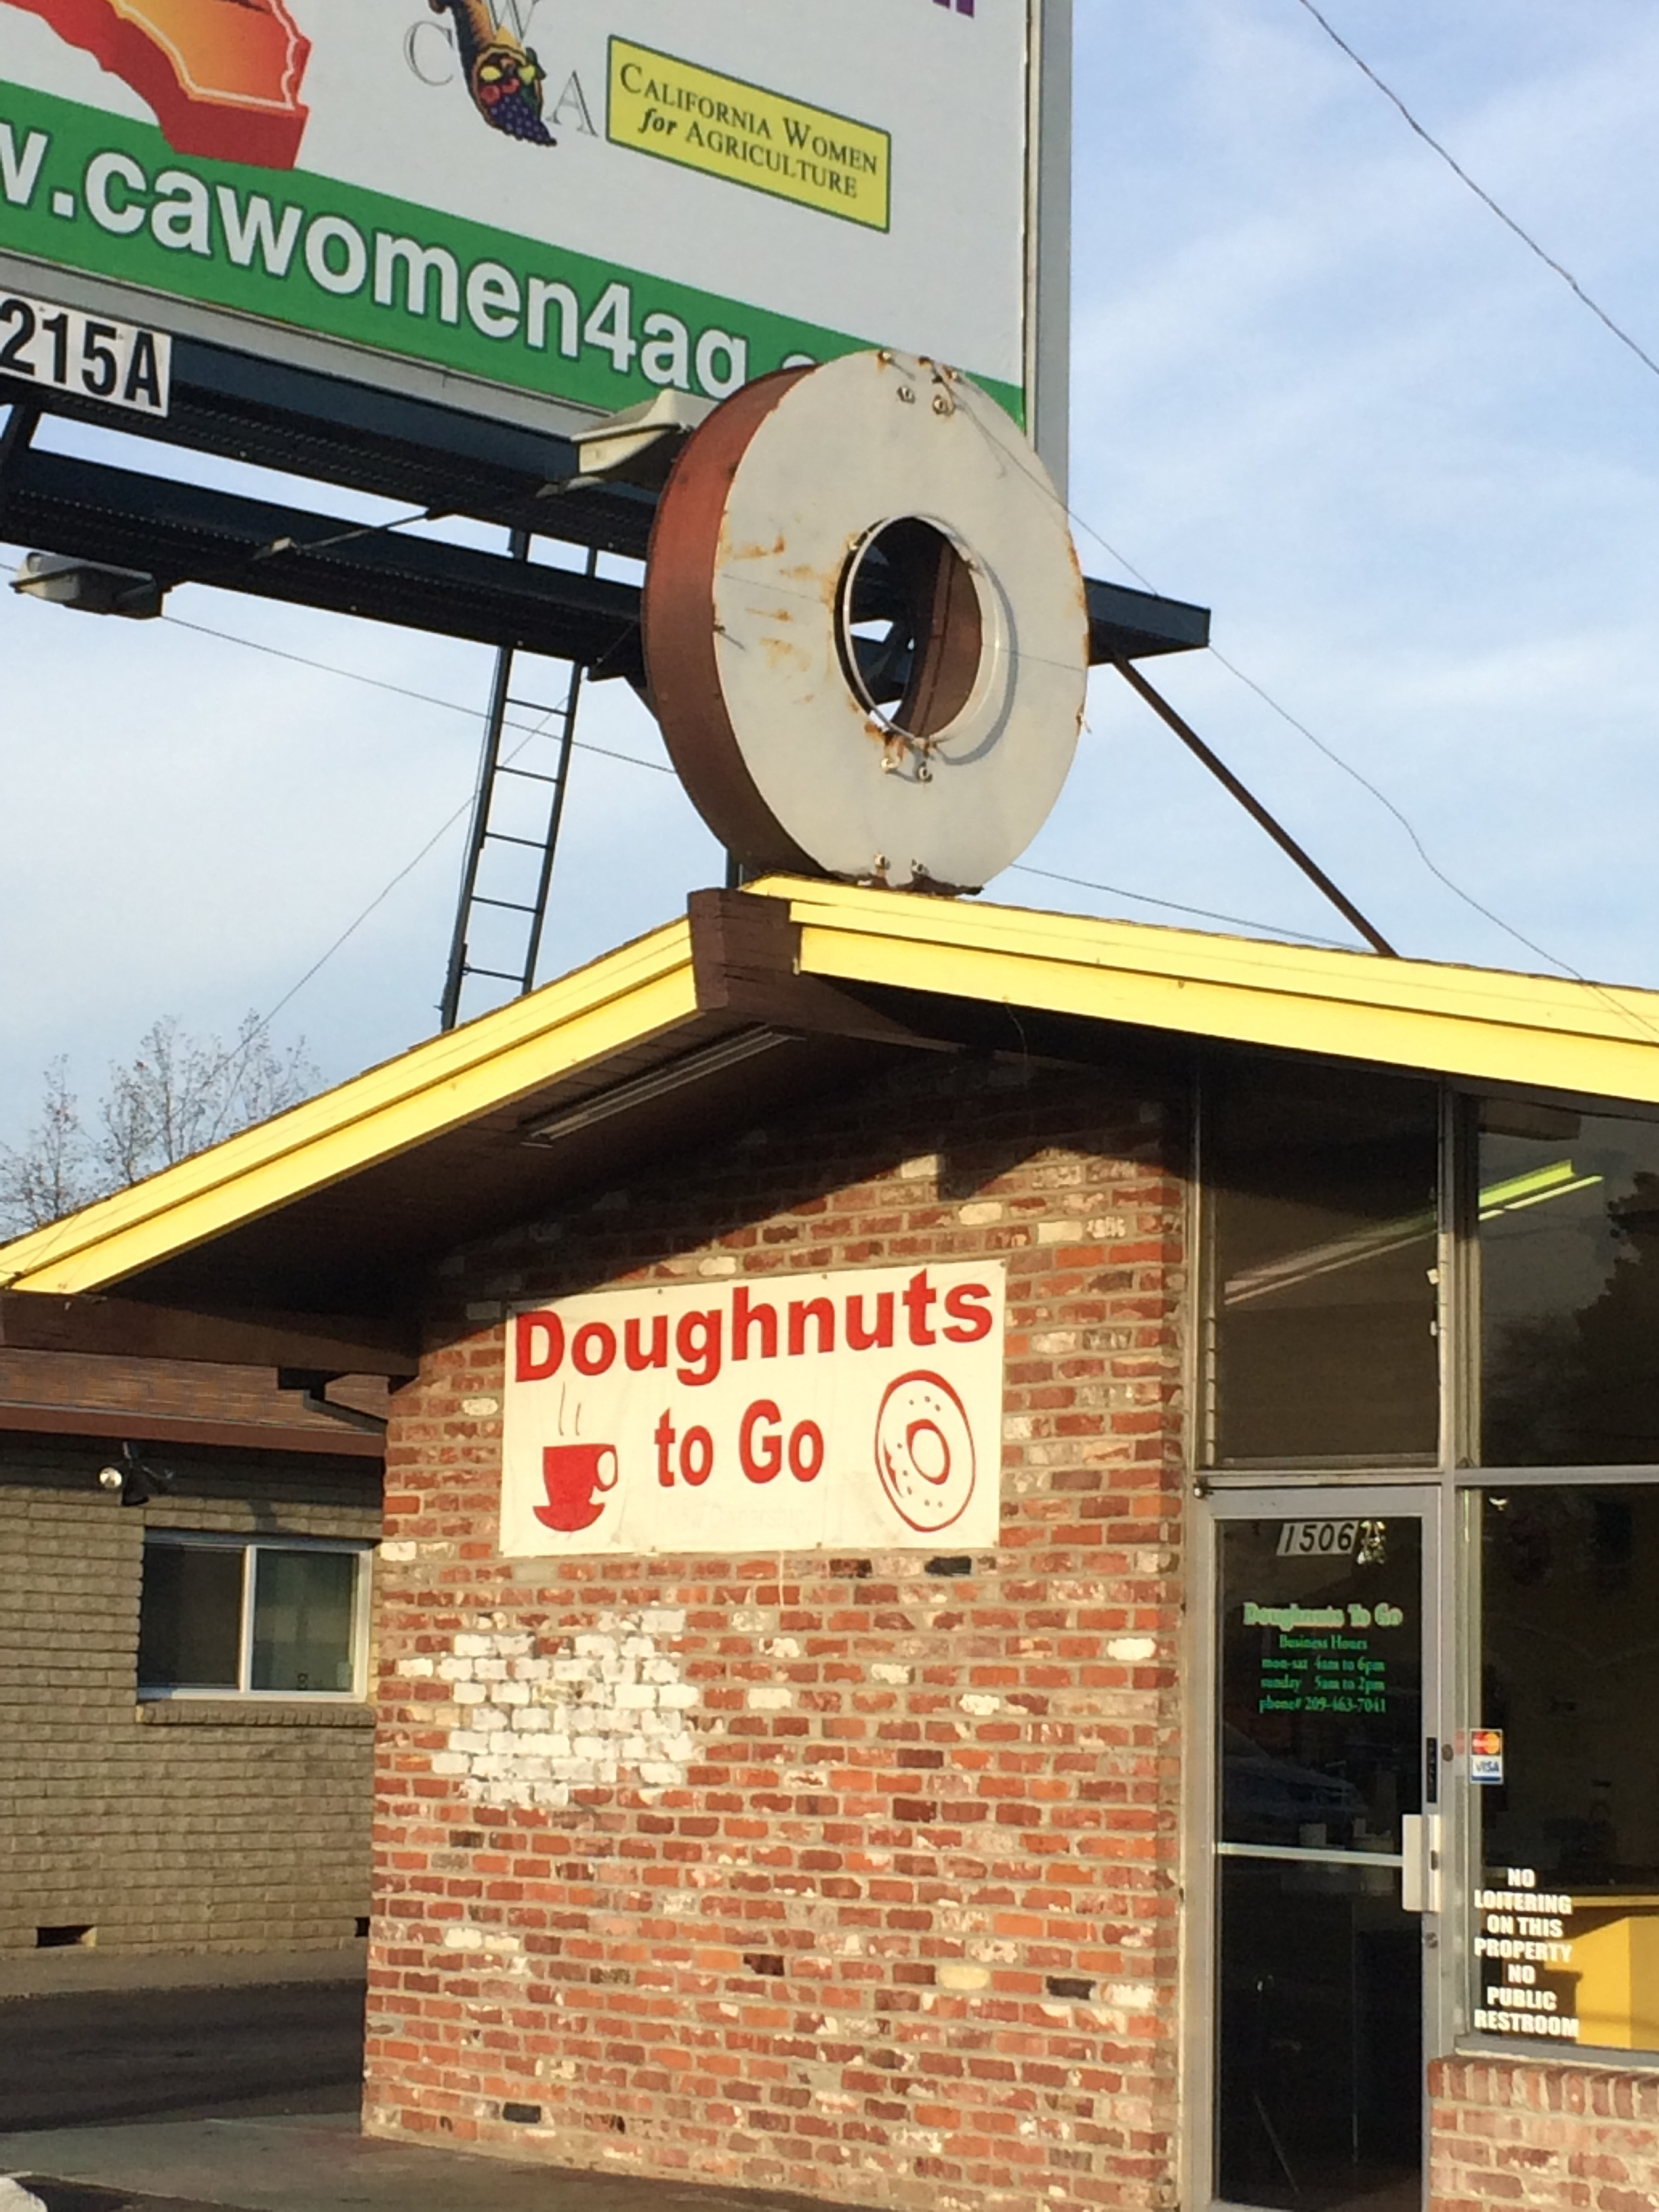 Douhgnuts to Go, Stockton